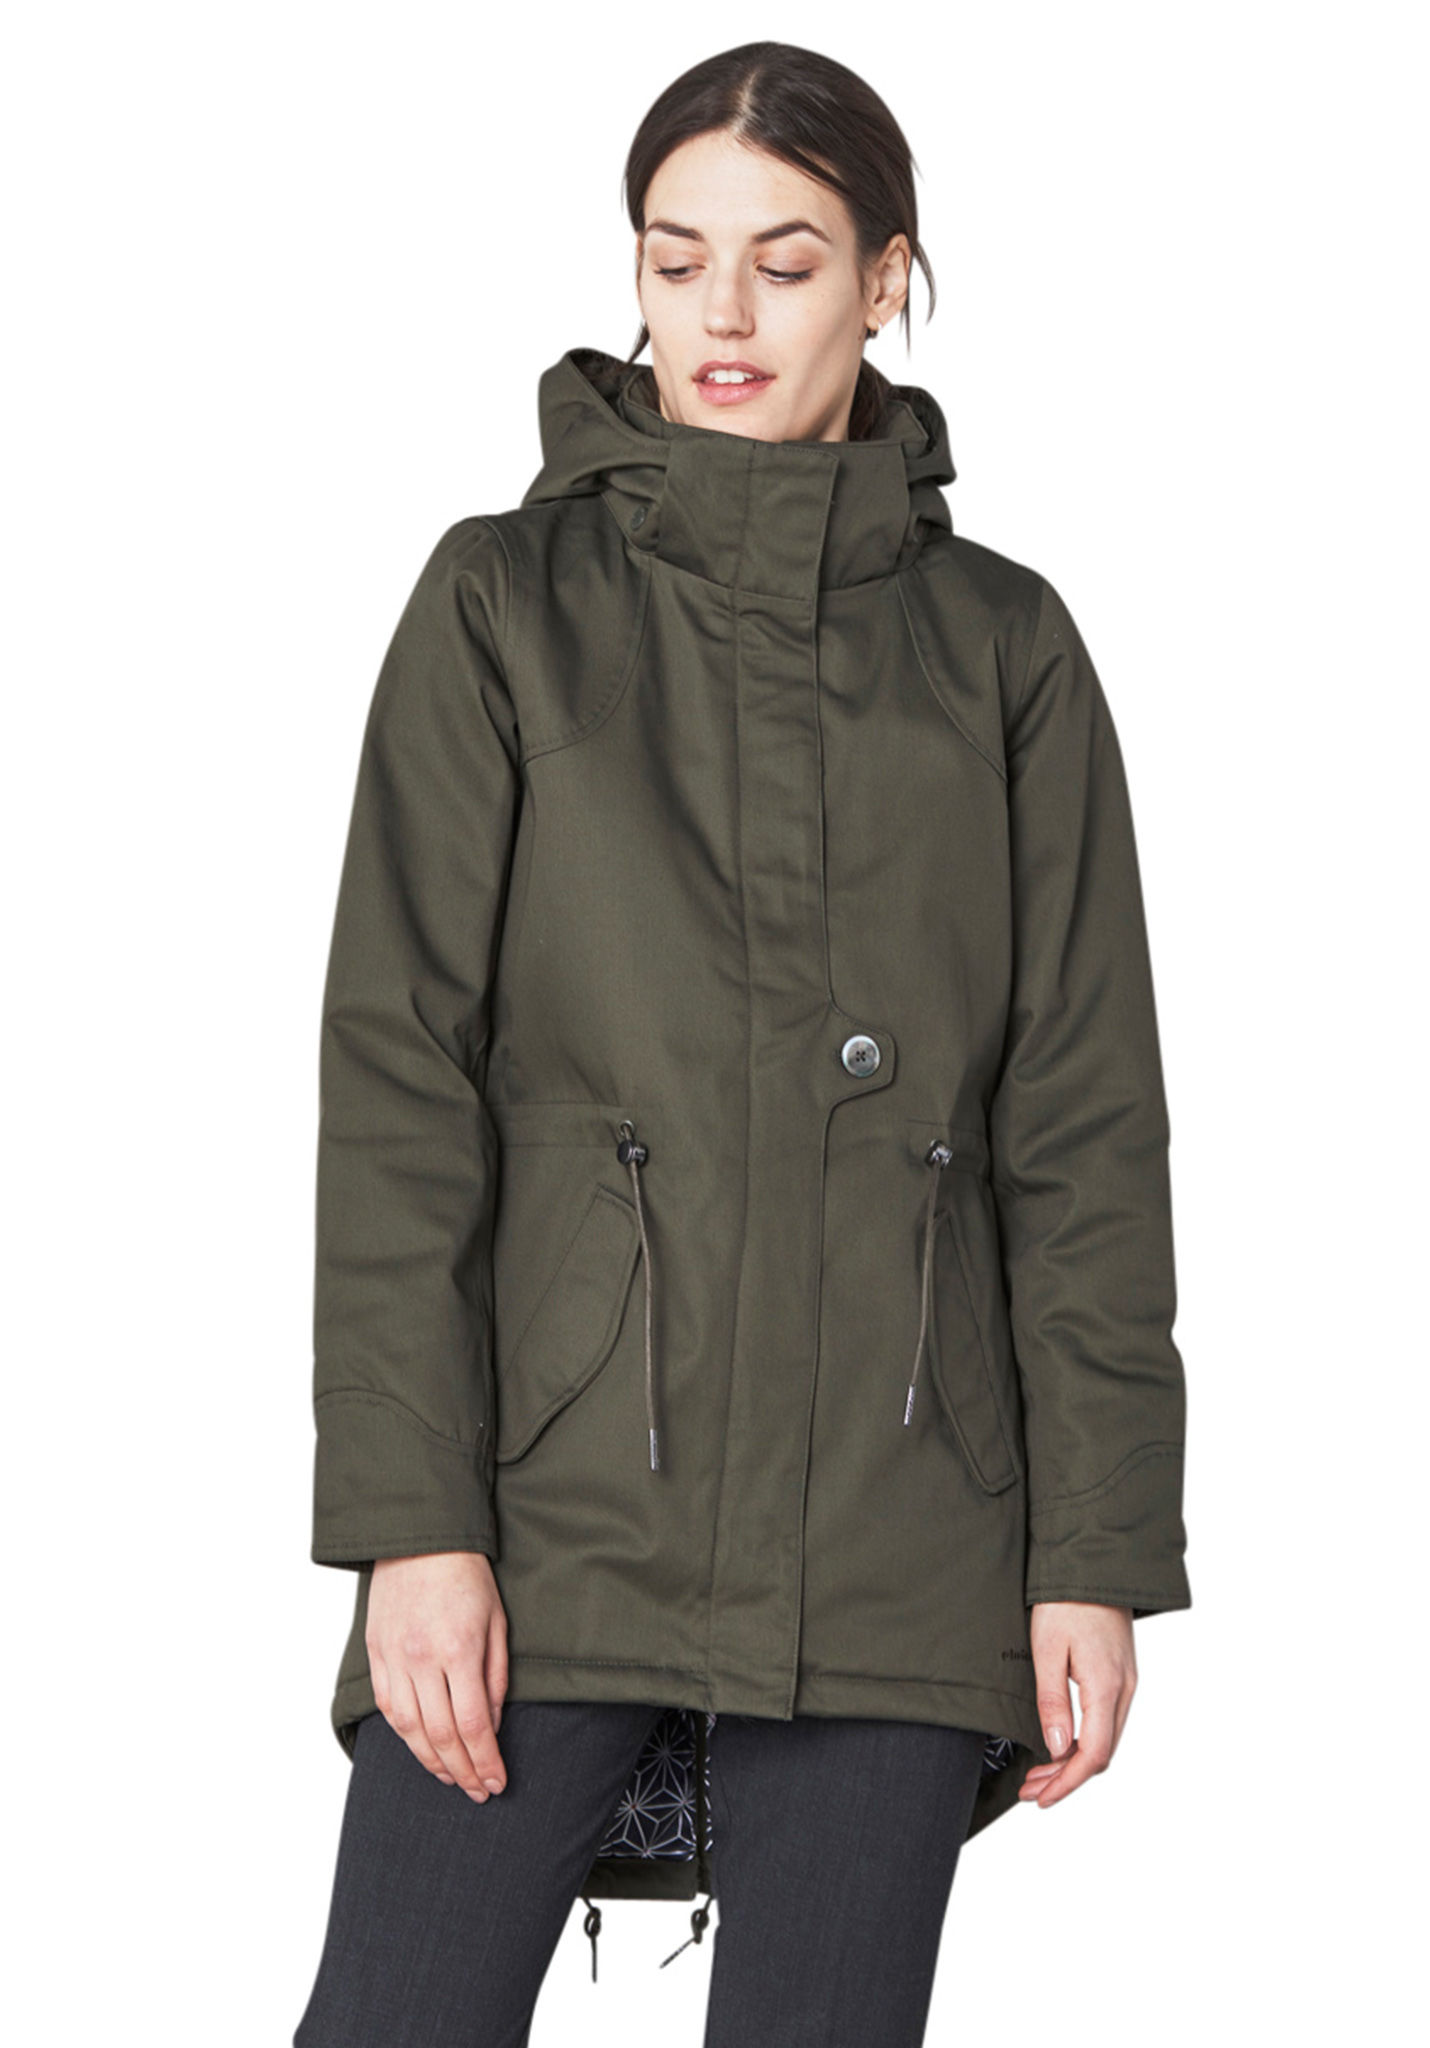 Elvine winterjacke damen